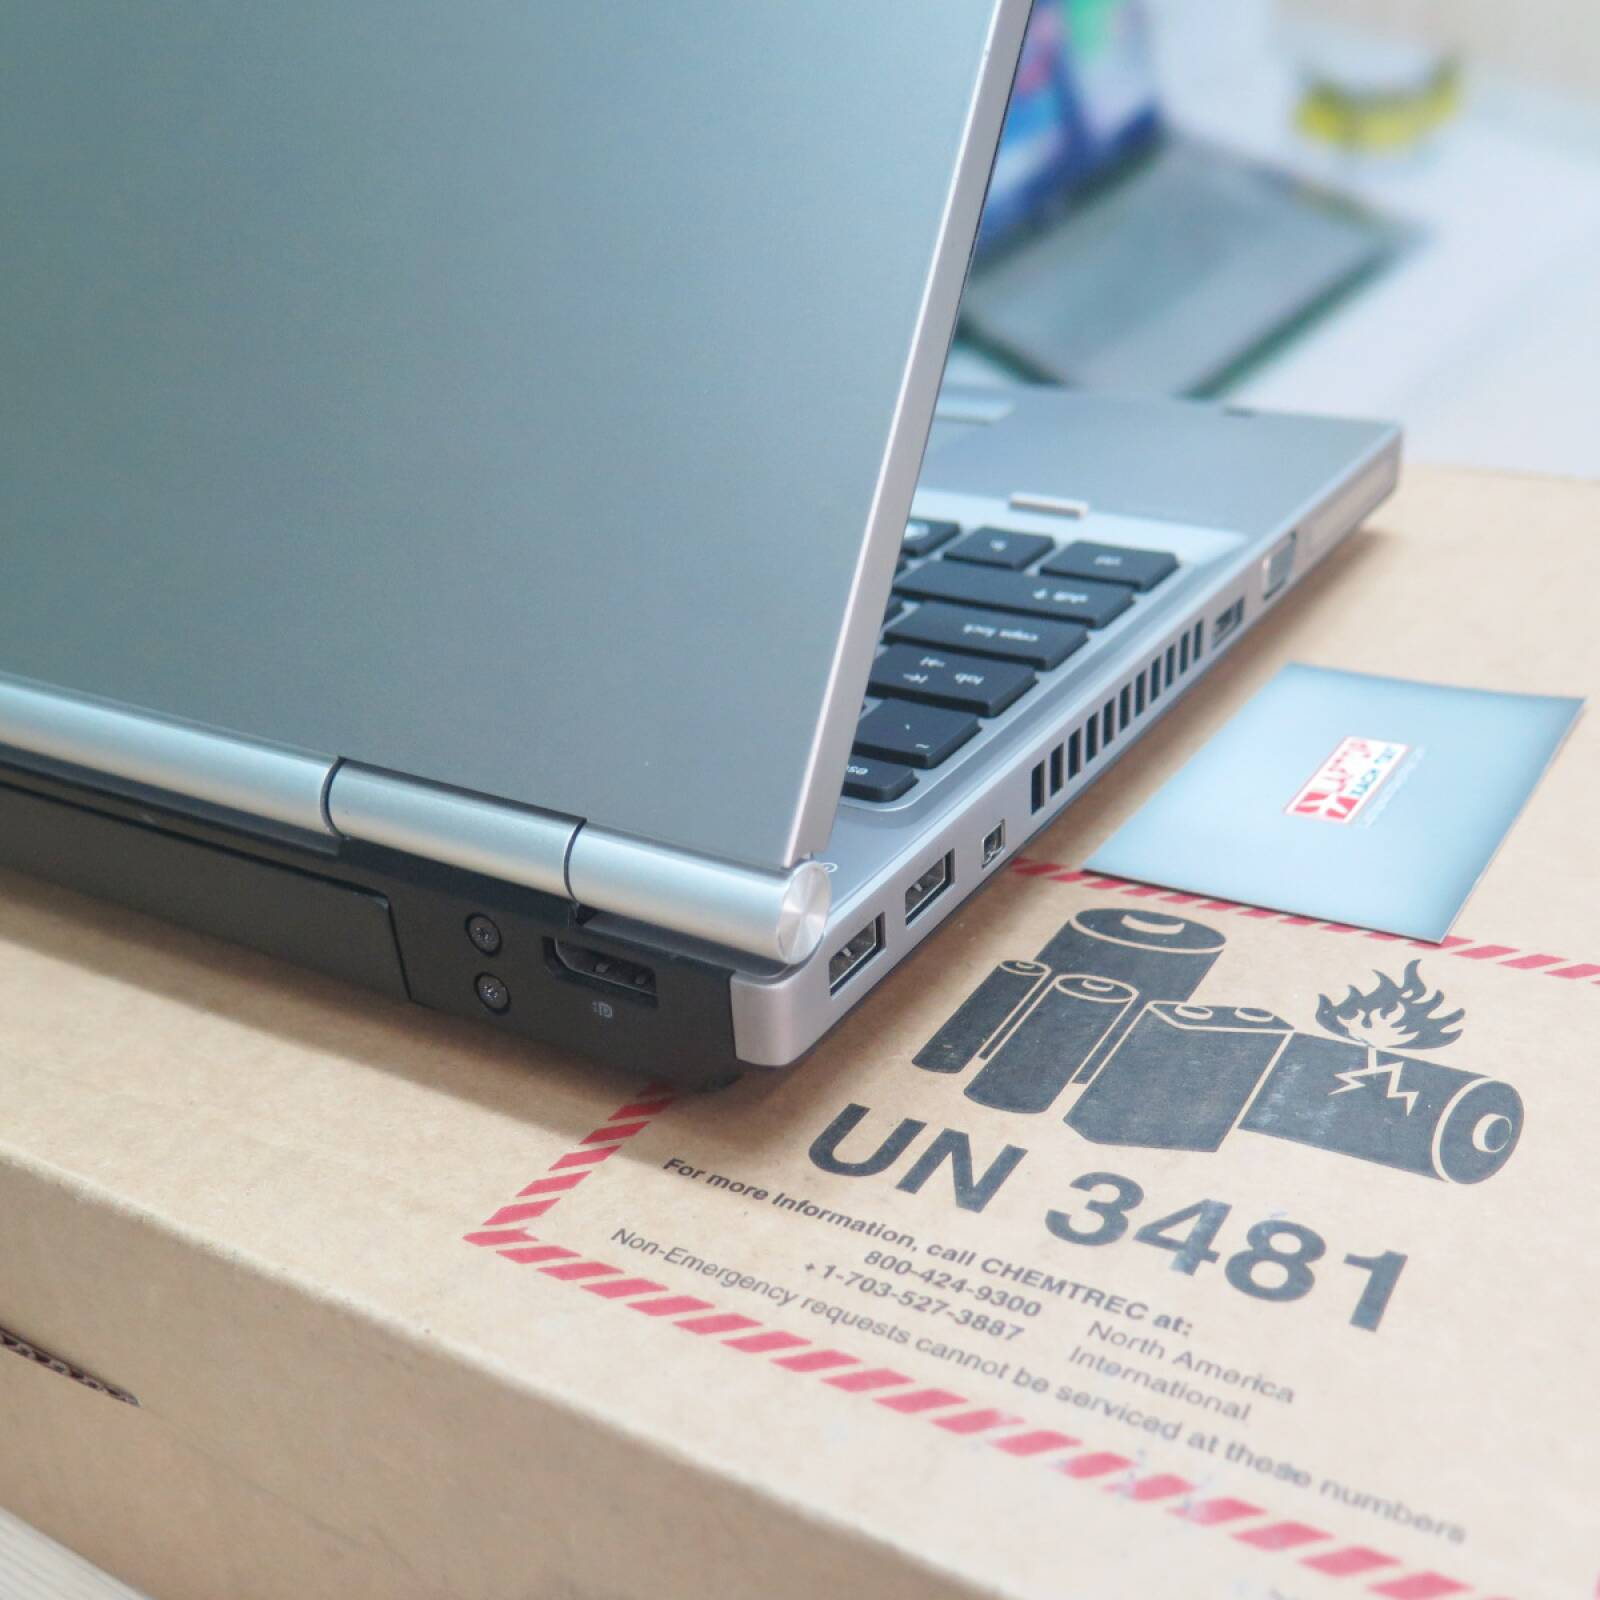 HP elitebook 8560p tại Laptopxachtayshop.com